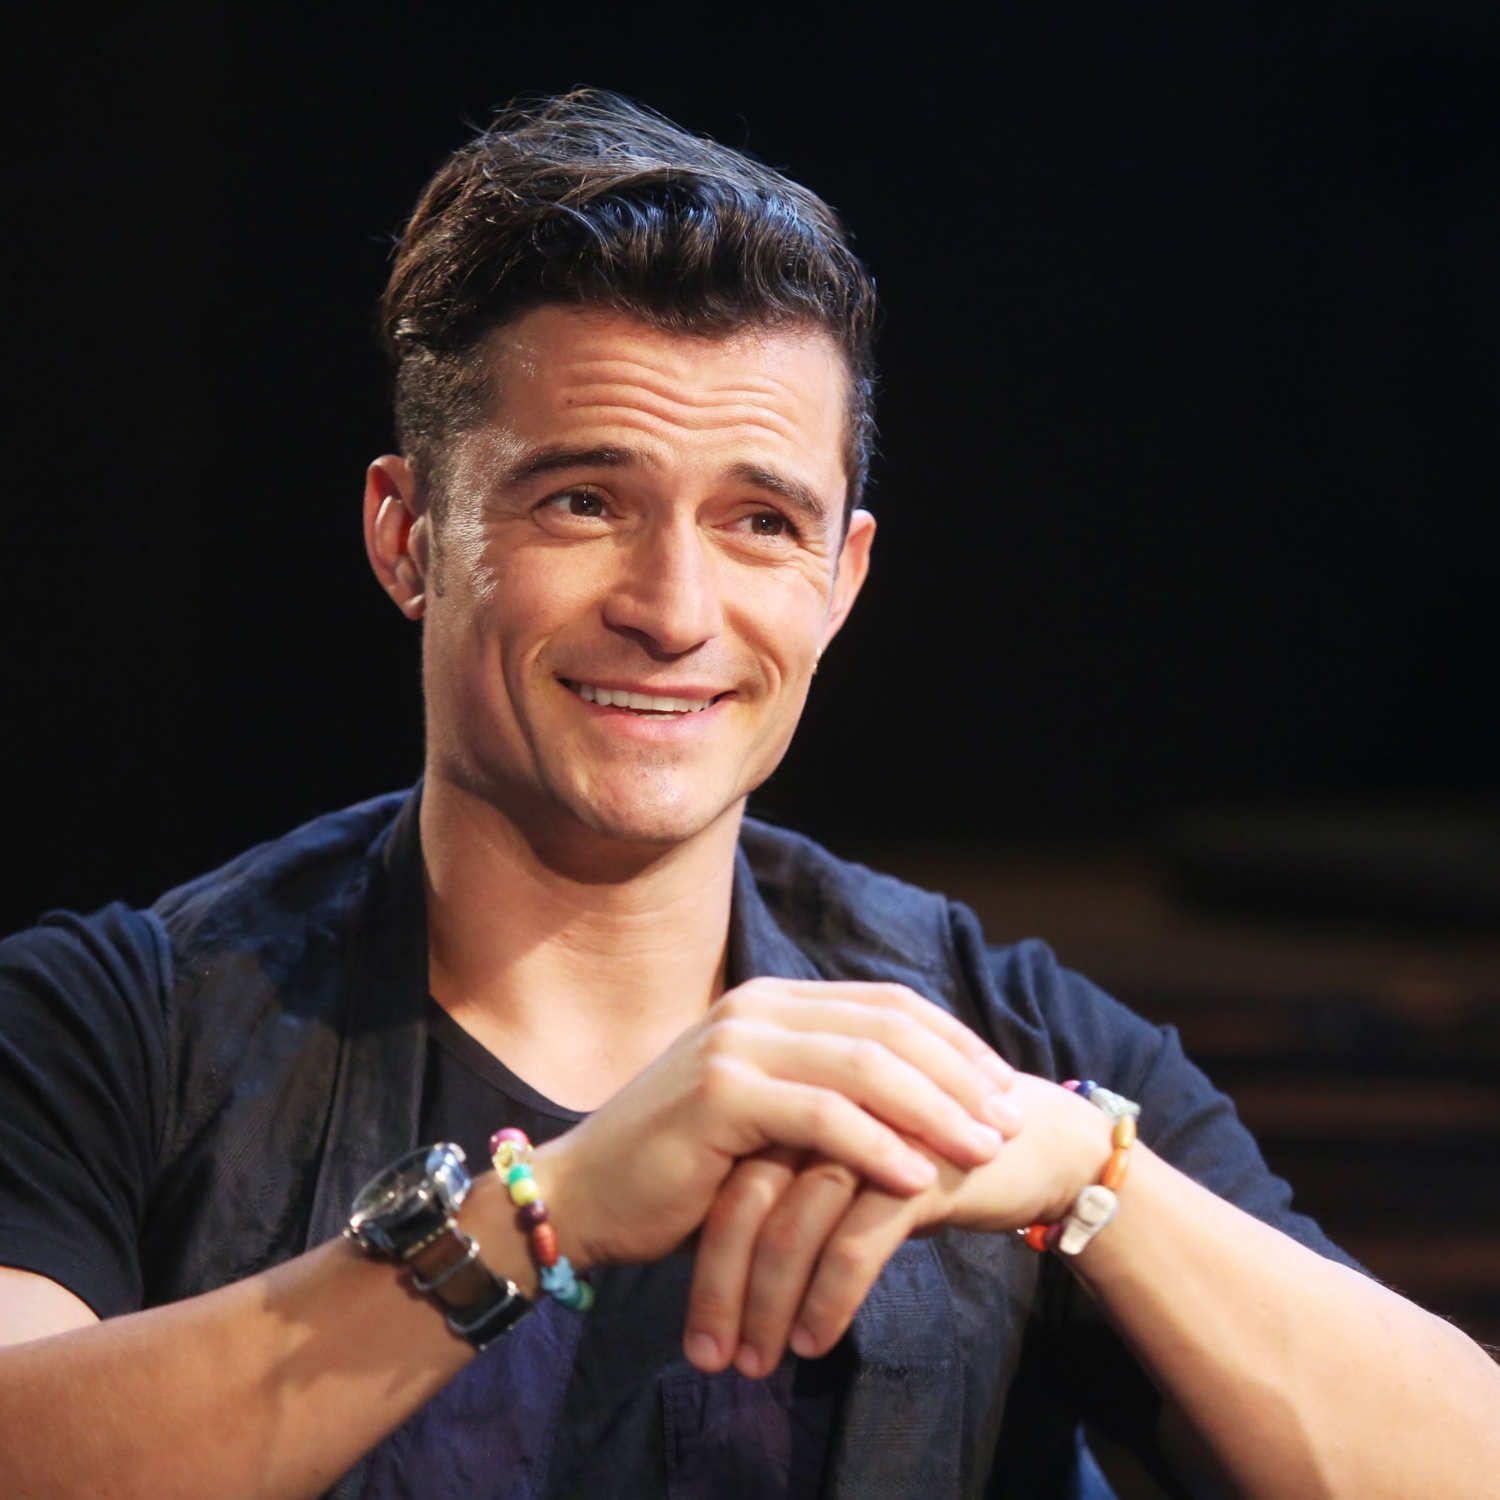 Orlando Bloom's Nude Form Disappoints Me